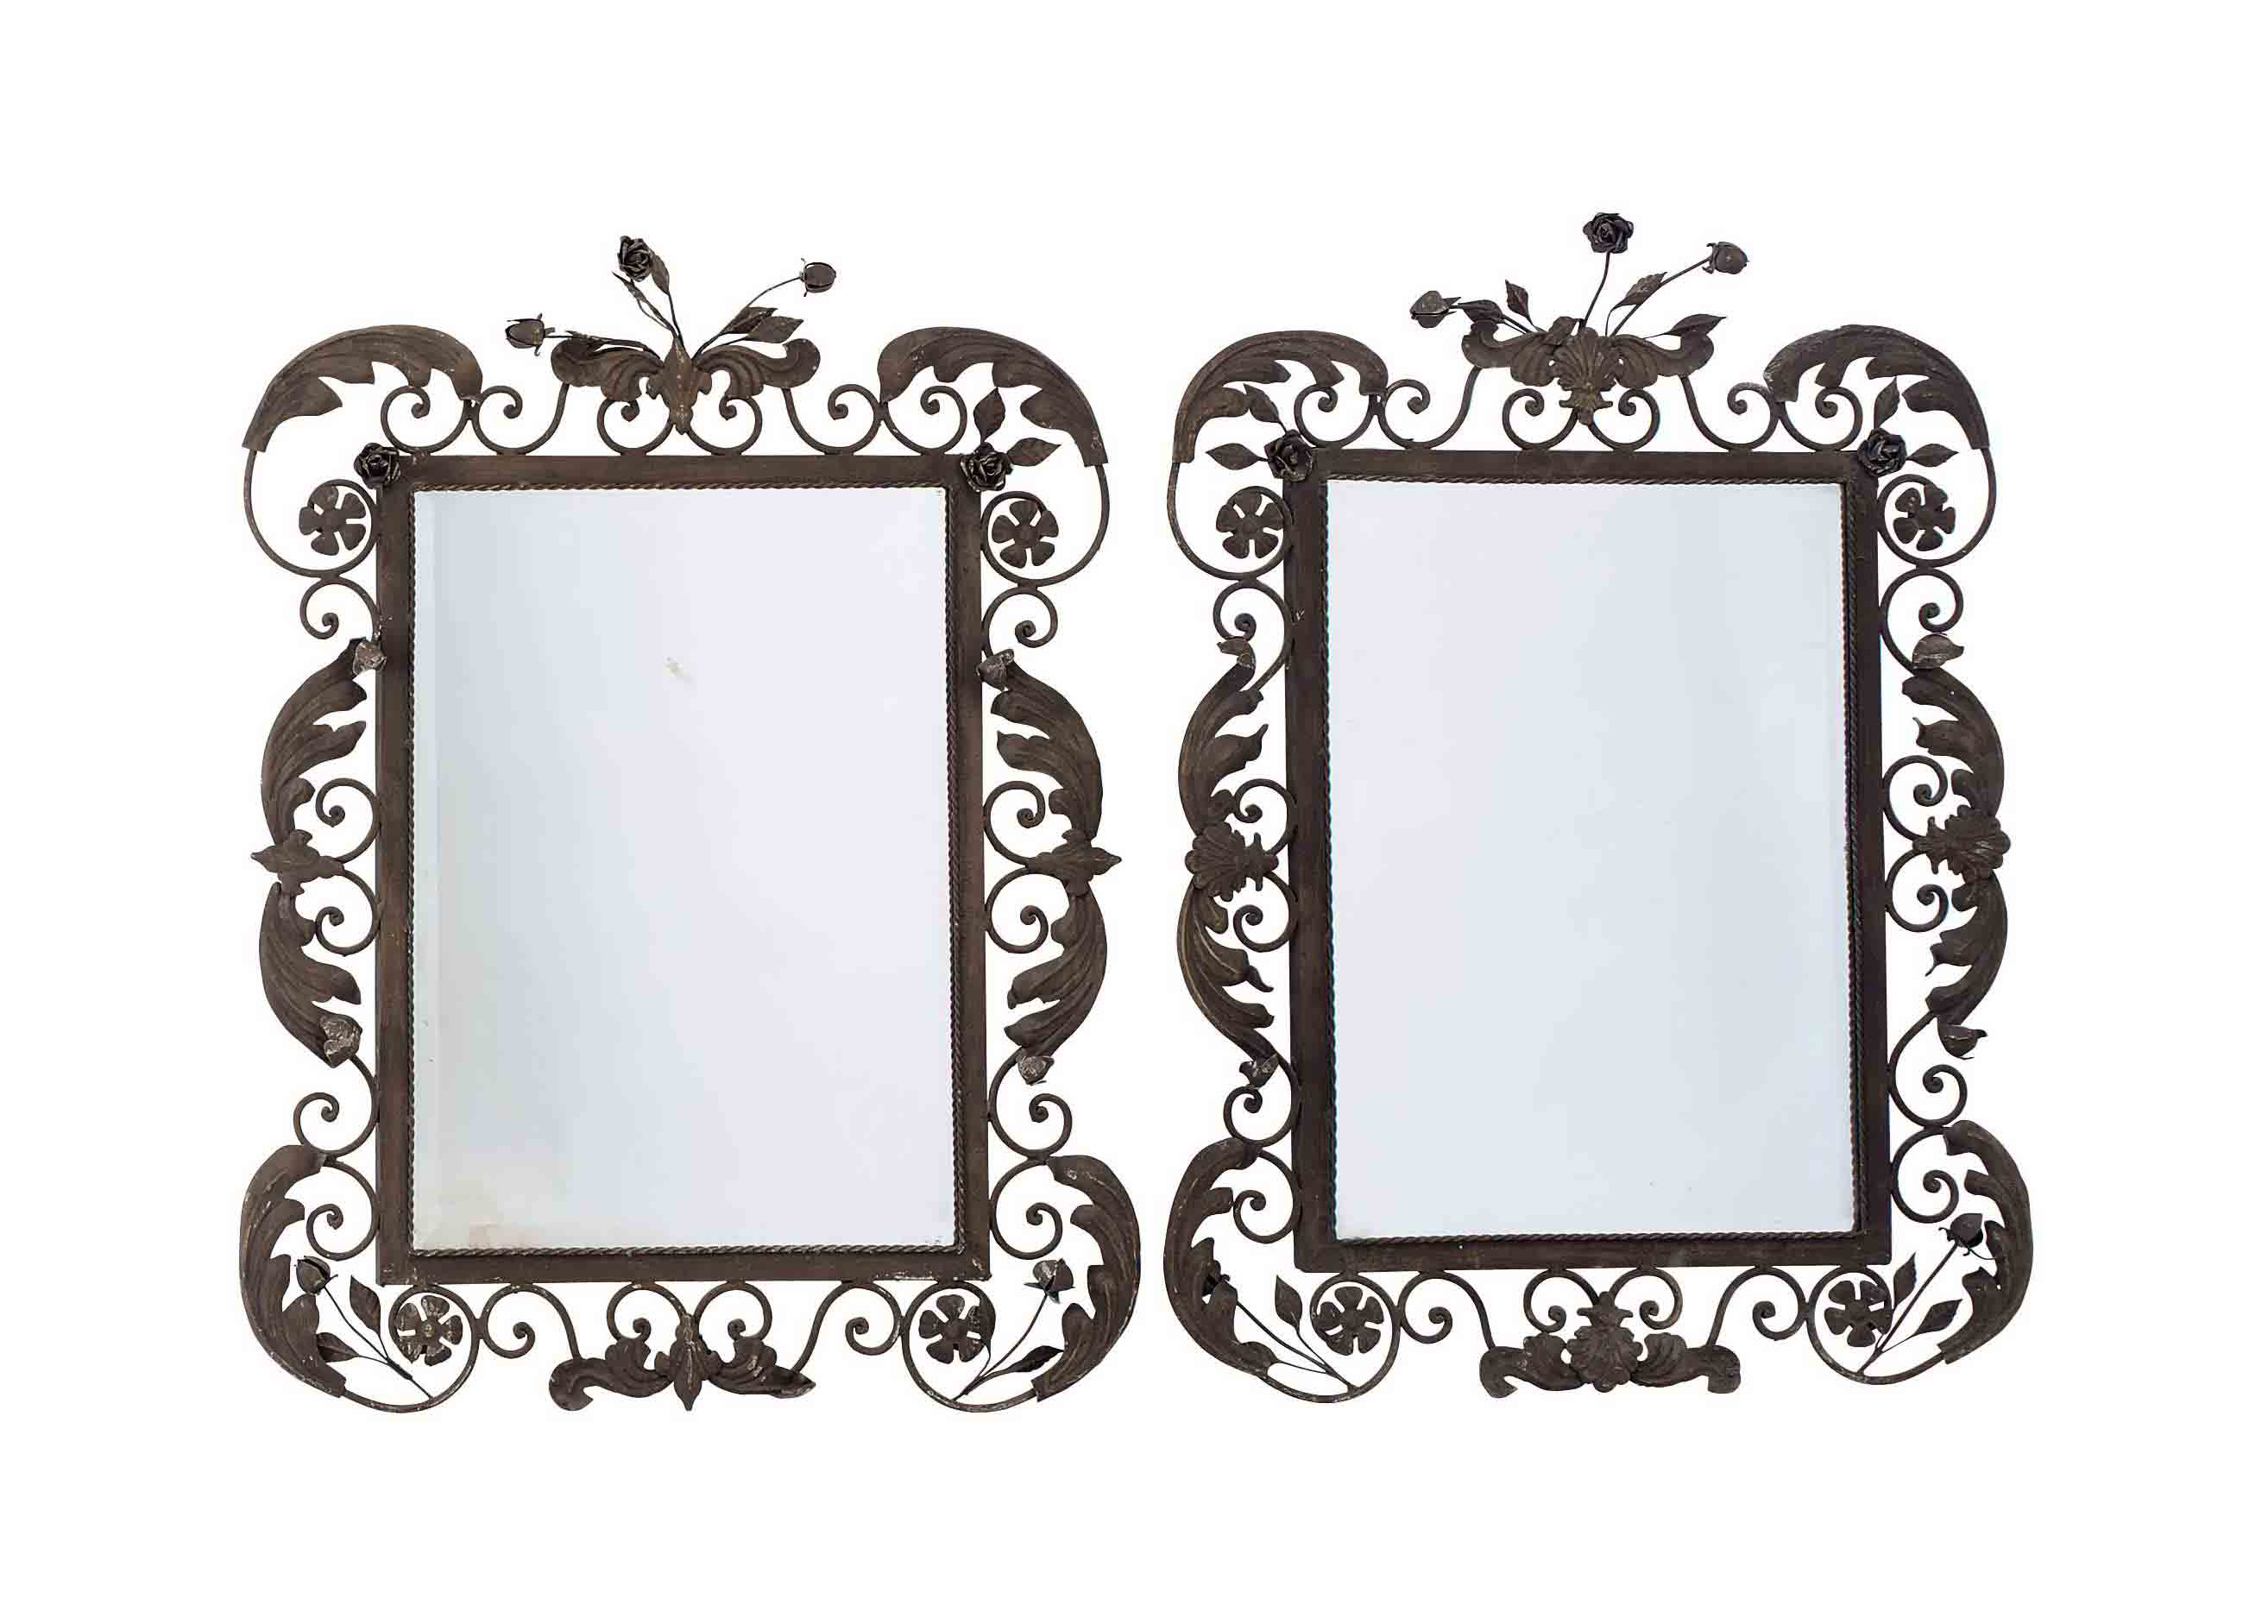 A PAIR OF WROUGHT-IRON MIRRORS